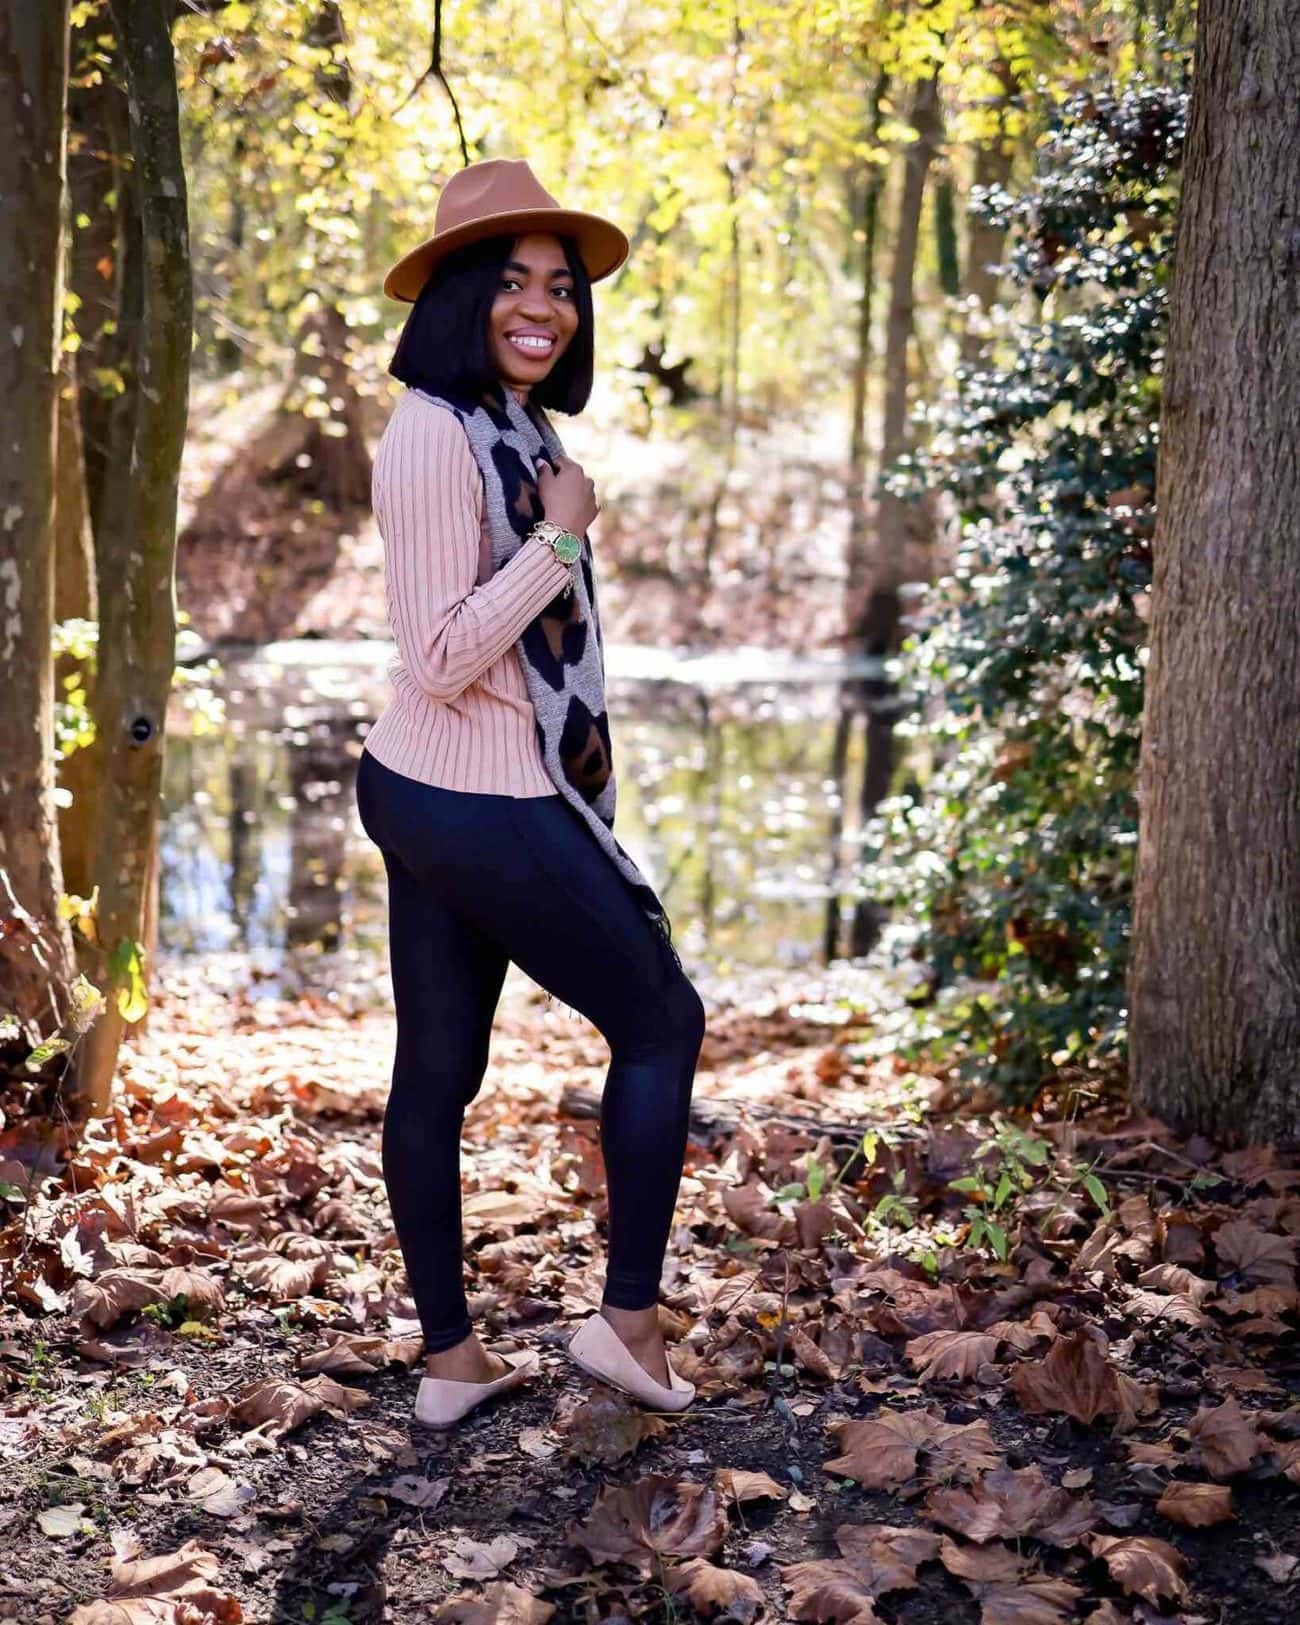 Spanx Faux Leather Leggings - Should you get Spanx leggings? Spanx leggings come in faux leather, velvet, camo and more. If you can only get one leggings, here's what I recommend.